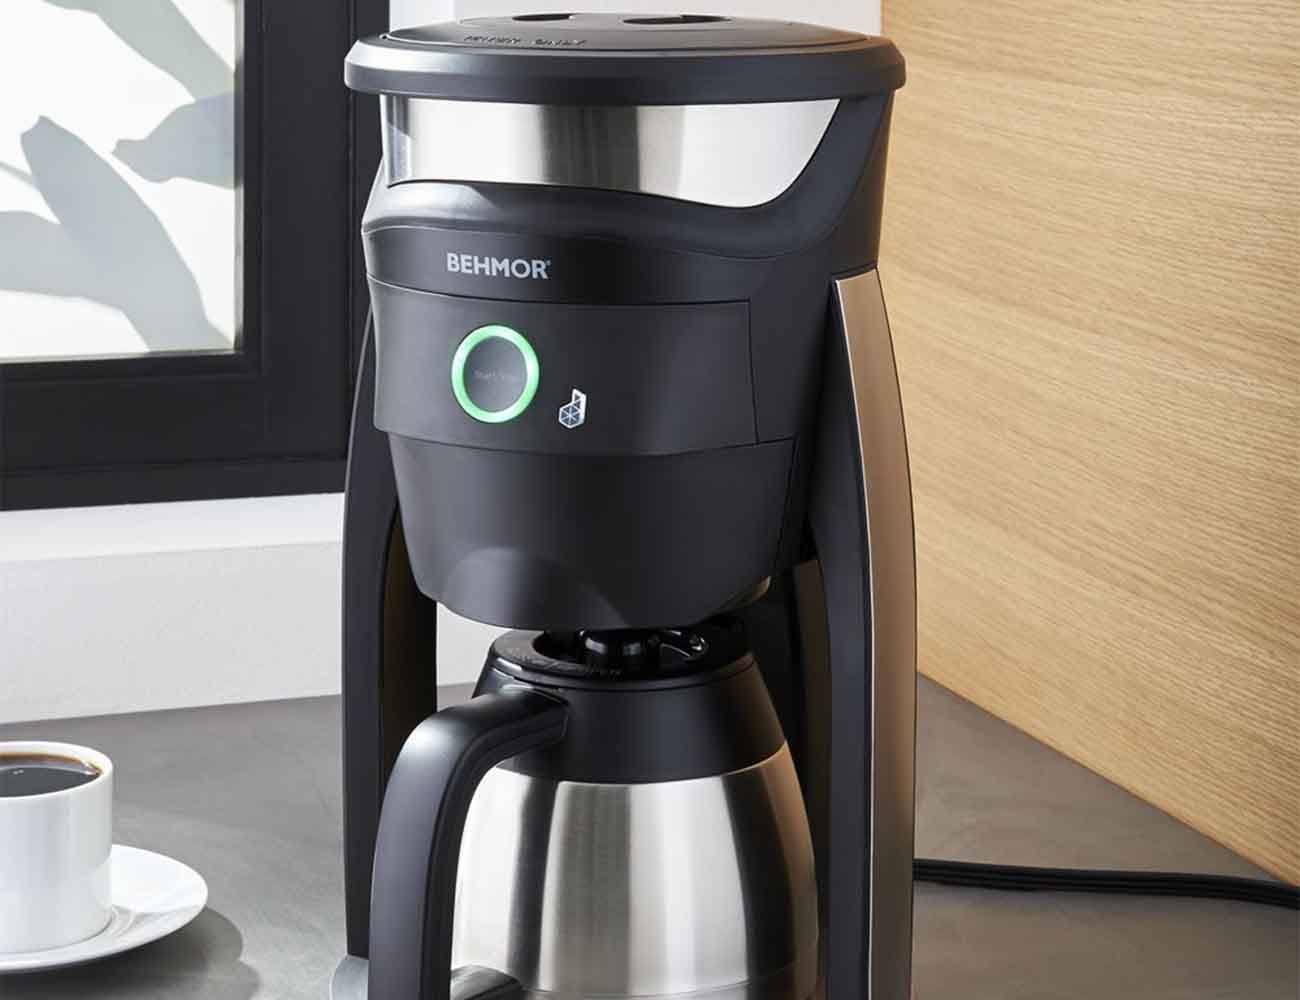 Coffee Maker Best Temperature : Behmor Connected Temperature Control Coffee Maker Gadget Flow